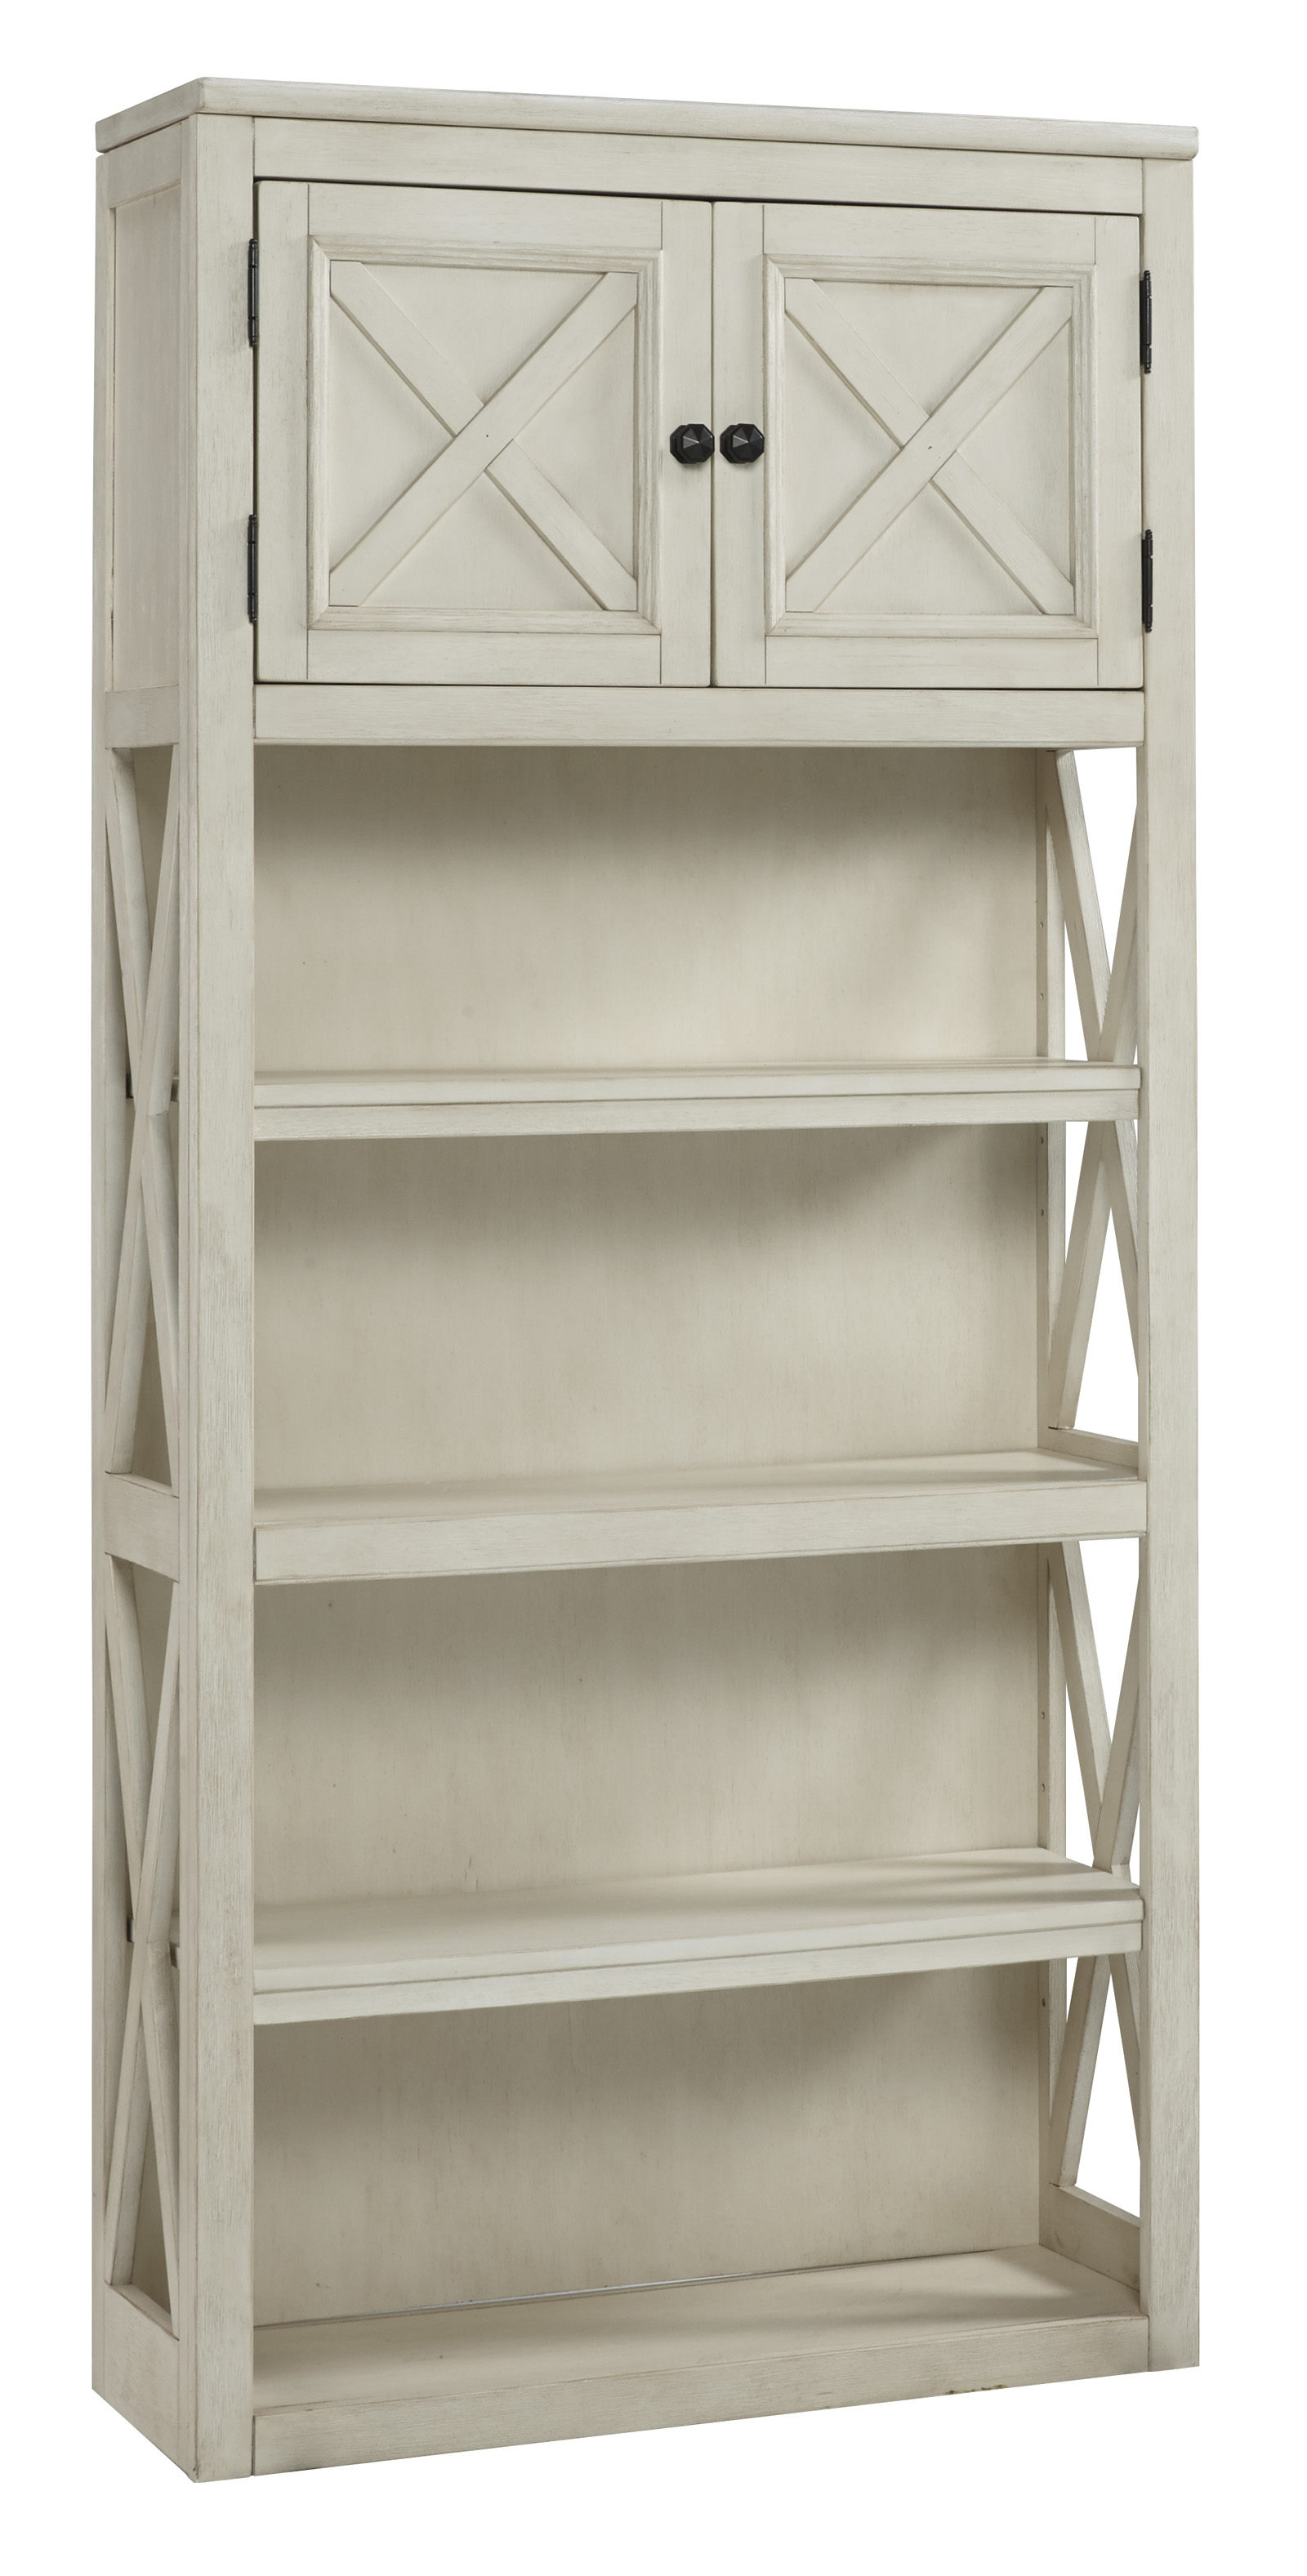 Ashley Furniture Bolanburg Large Bookcase The Classy Home